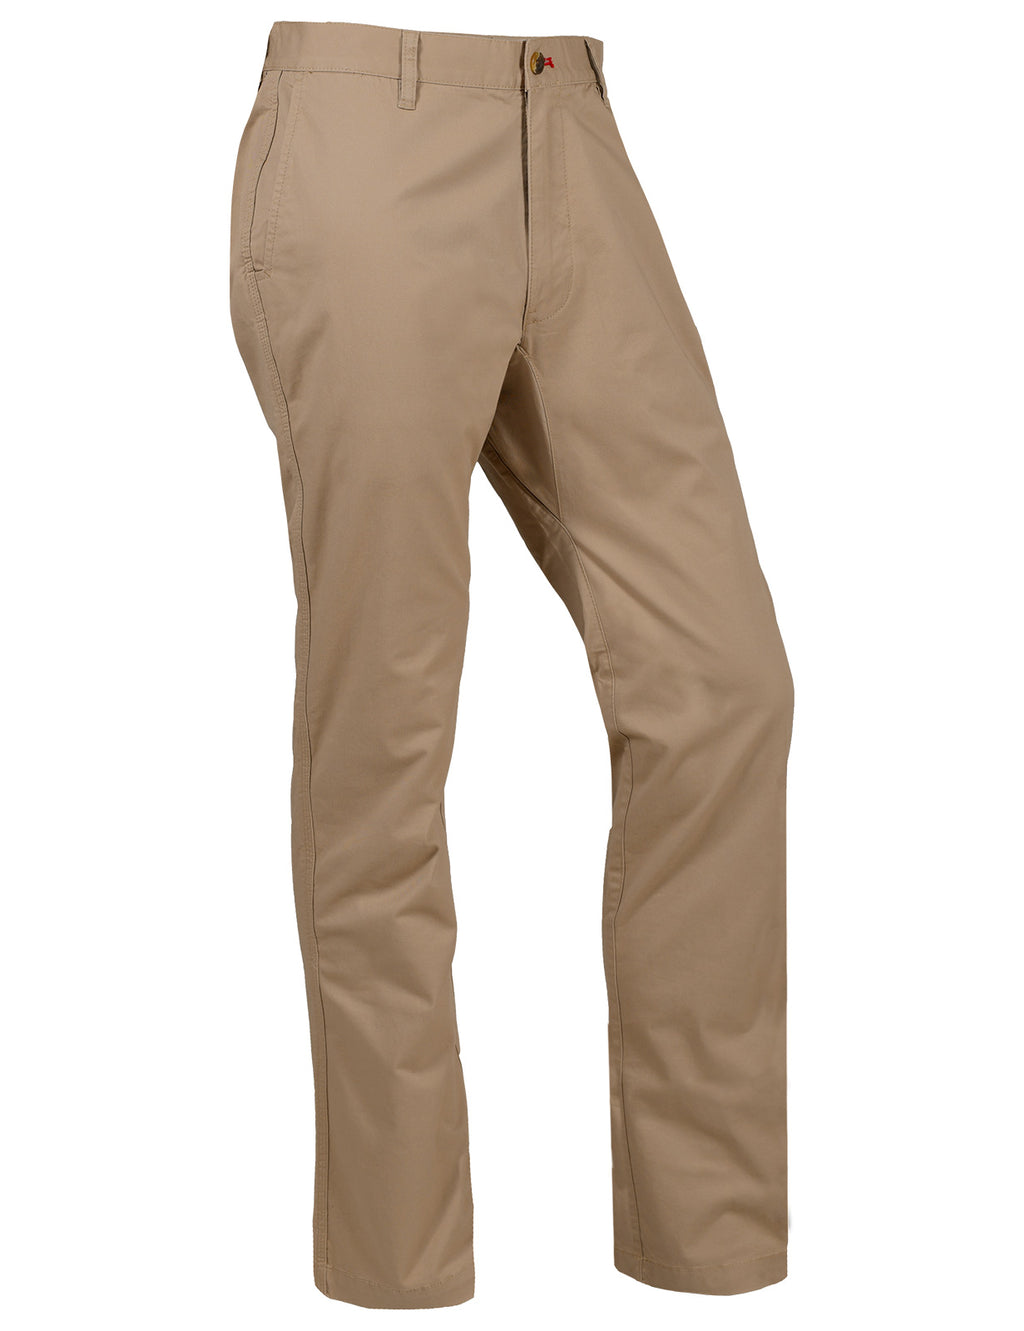 Men's Jackson Chino Pant | Slim Tailored Fit / Classic Khaki